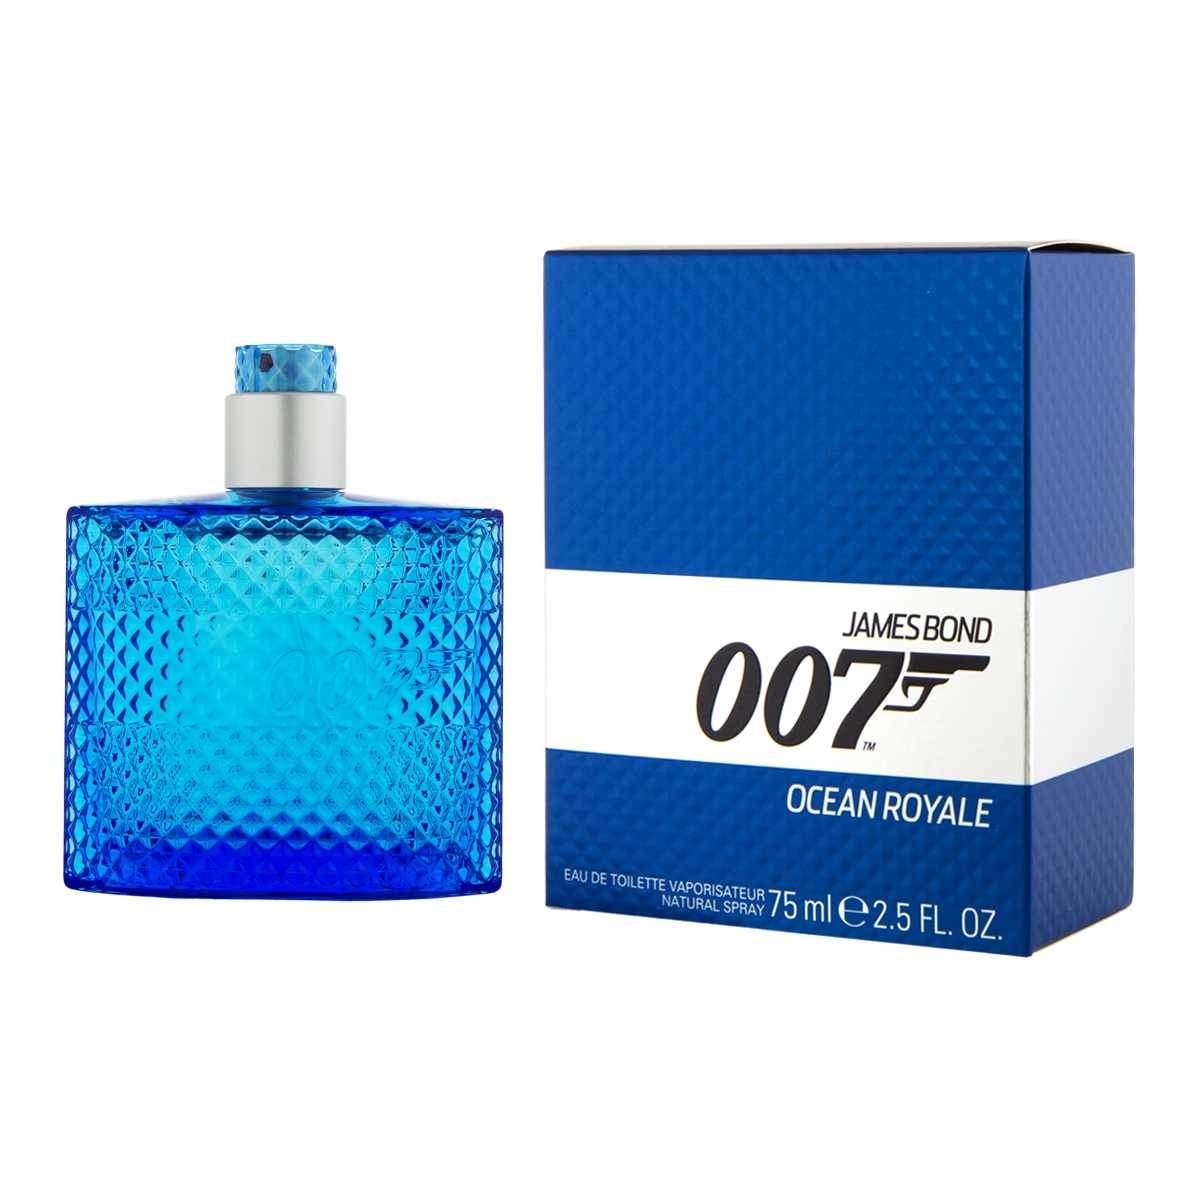 James Bond 007 Ocean Royale EDT M75